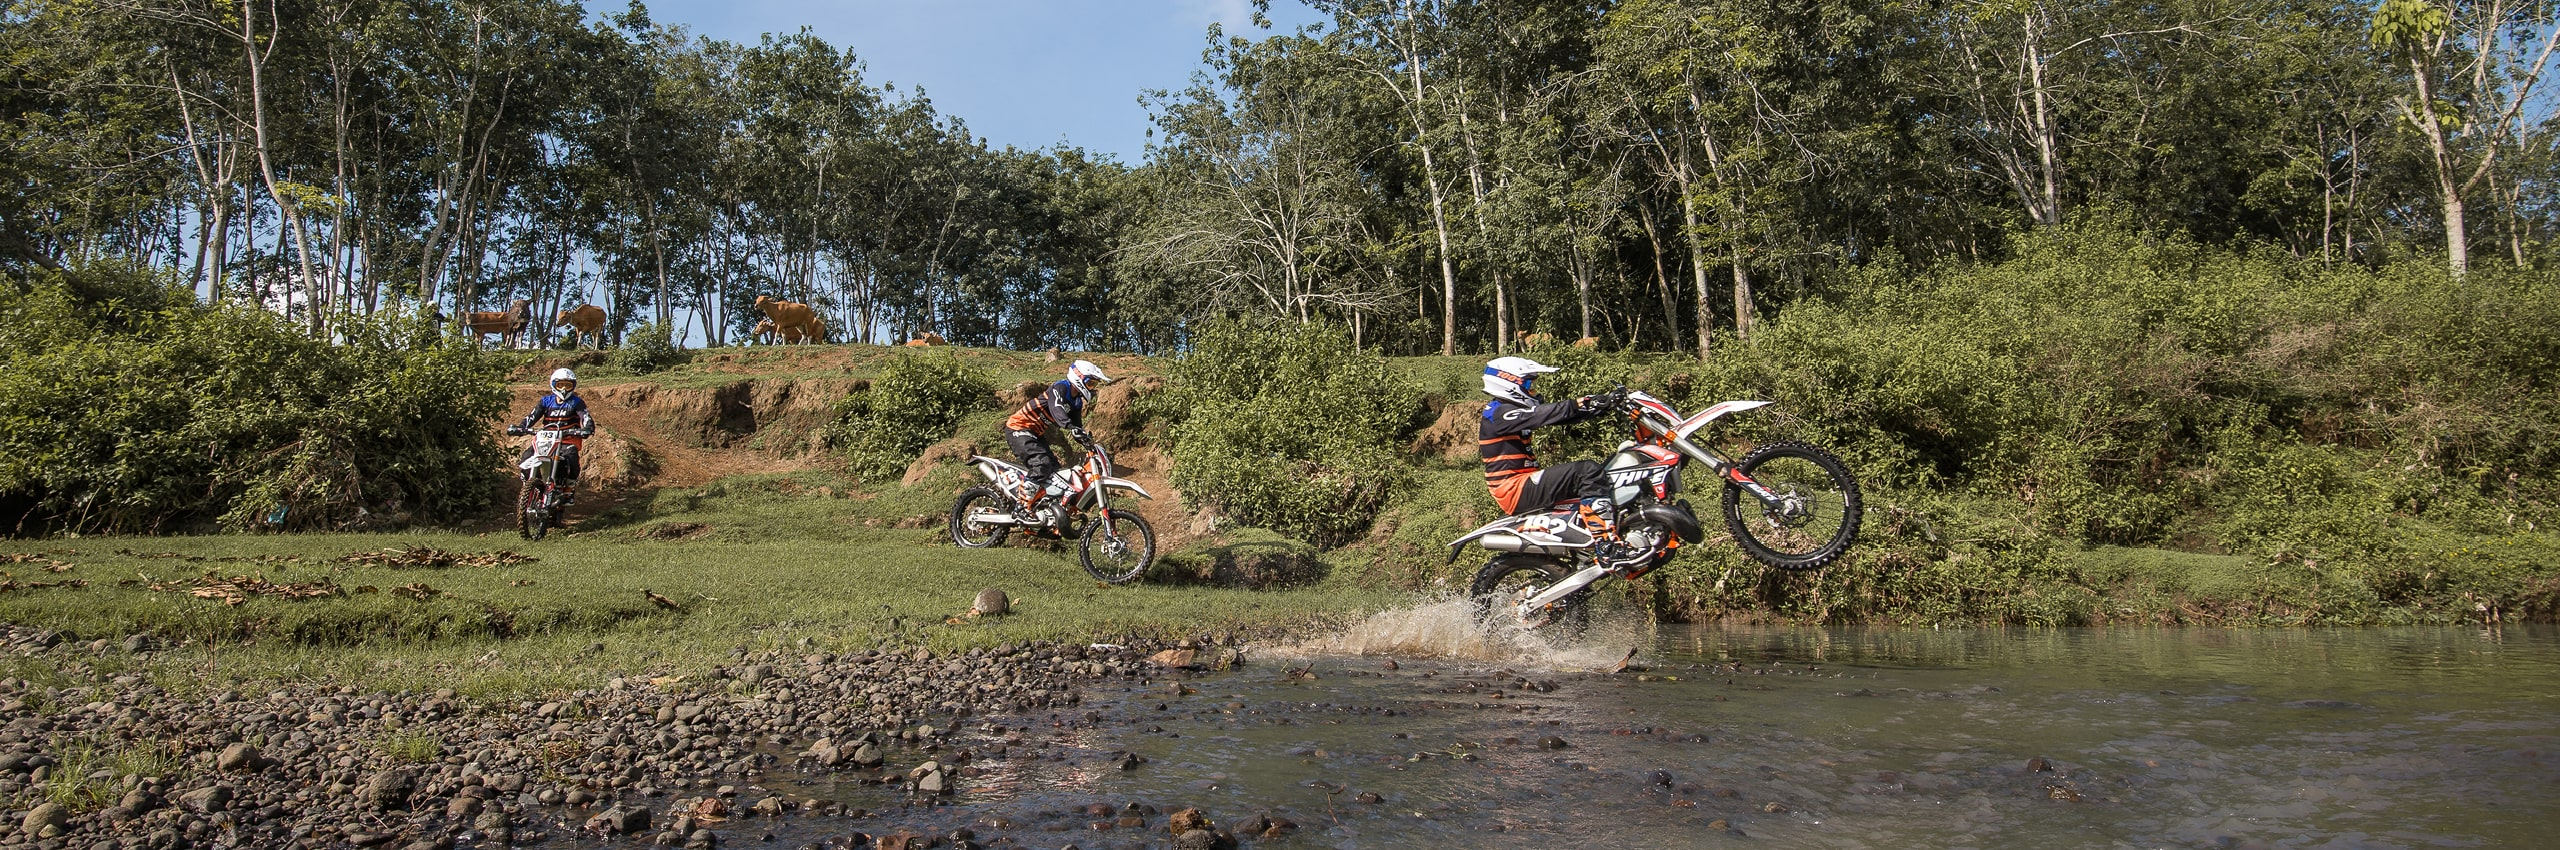 Bali_Dirt_Bikes_Tabanan_Jungle_Slider13